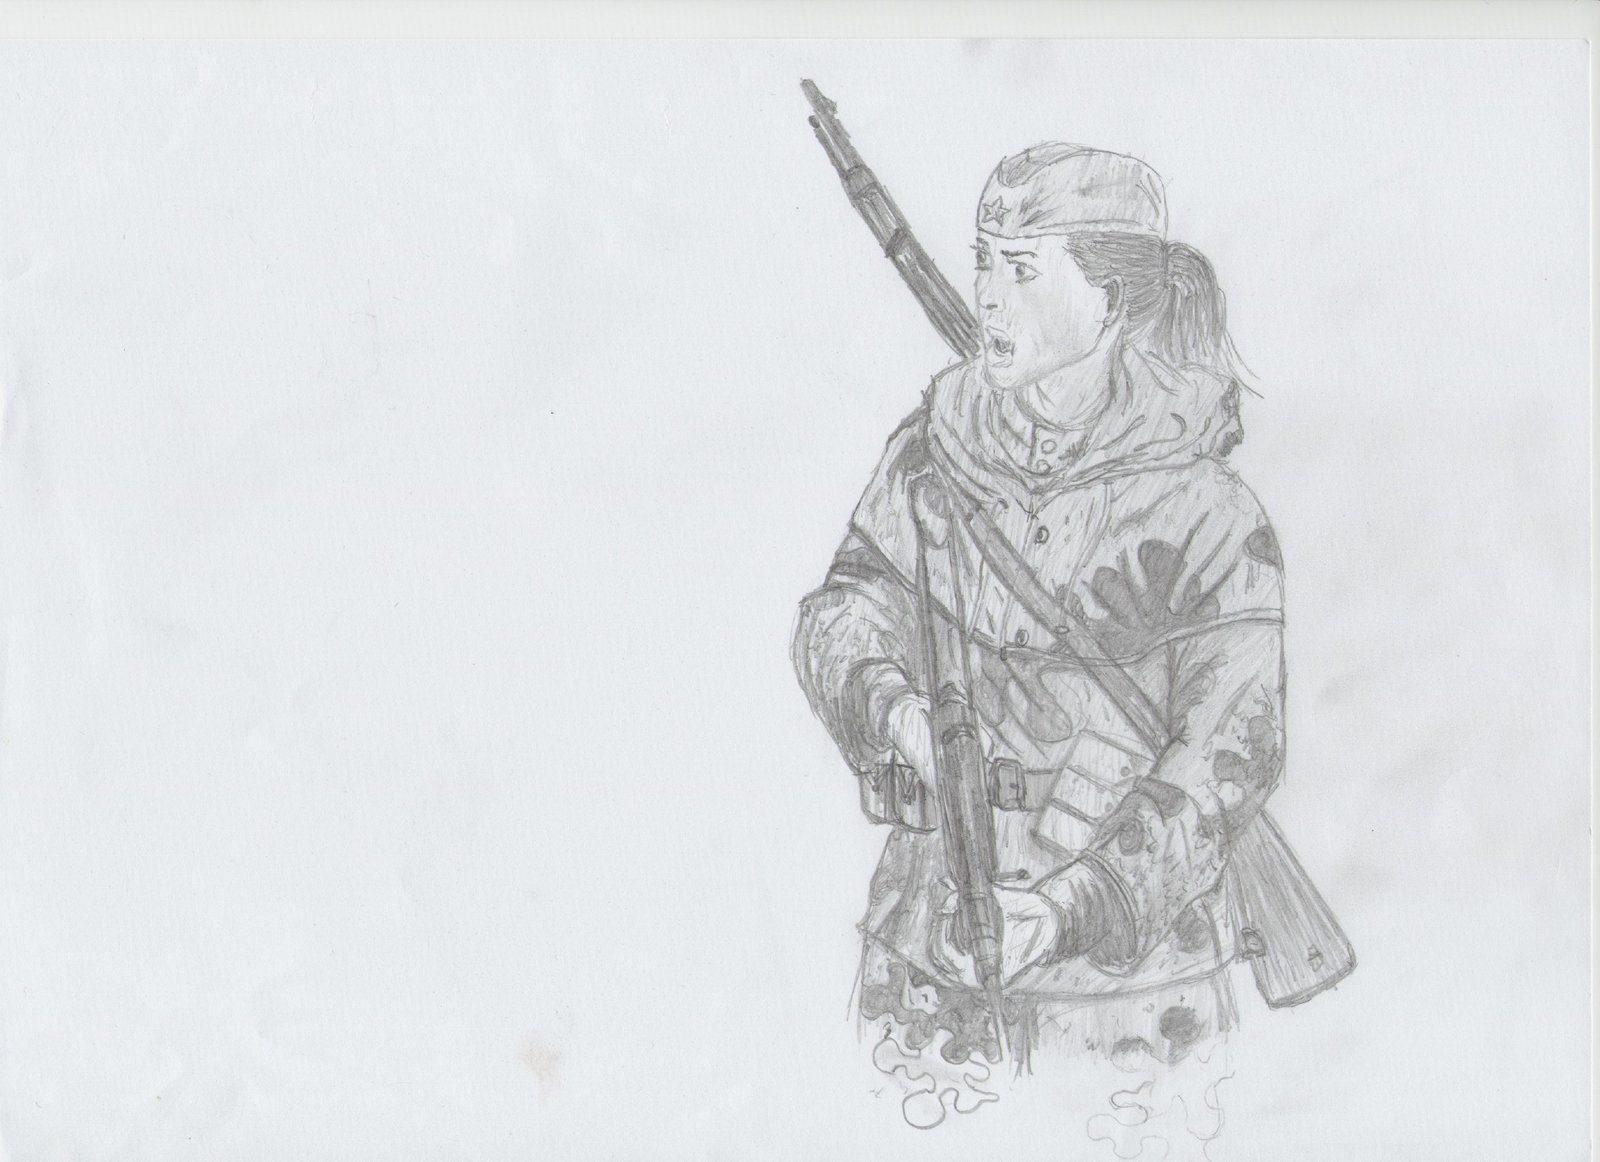 Drawn snipers red army Army  Red VassKholzovf DeviantArt